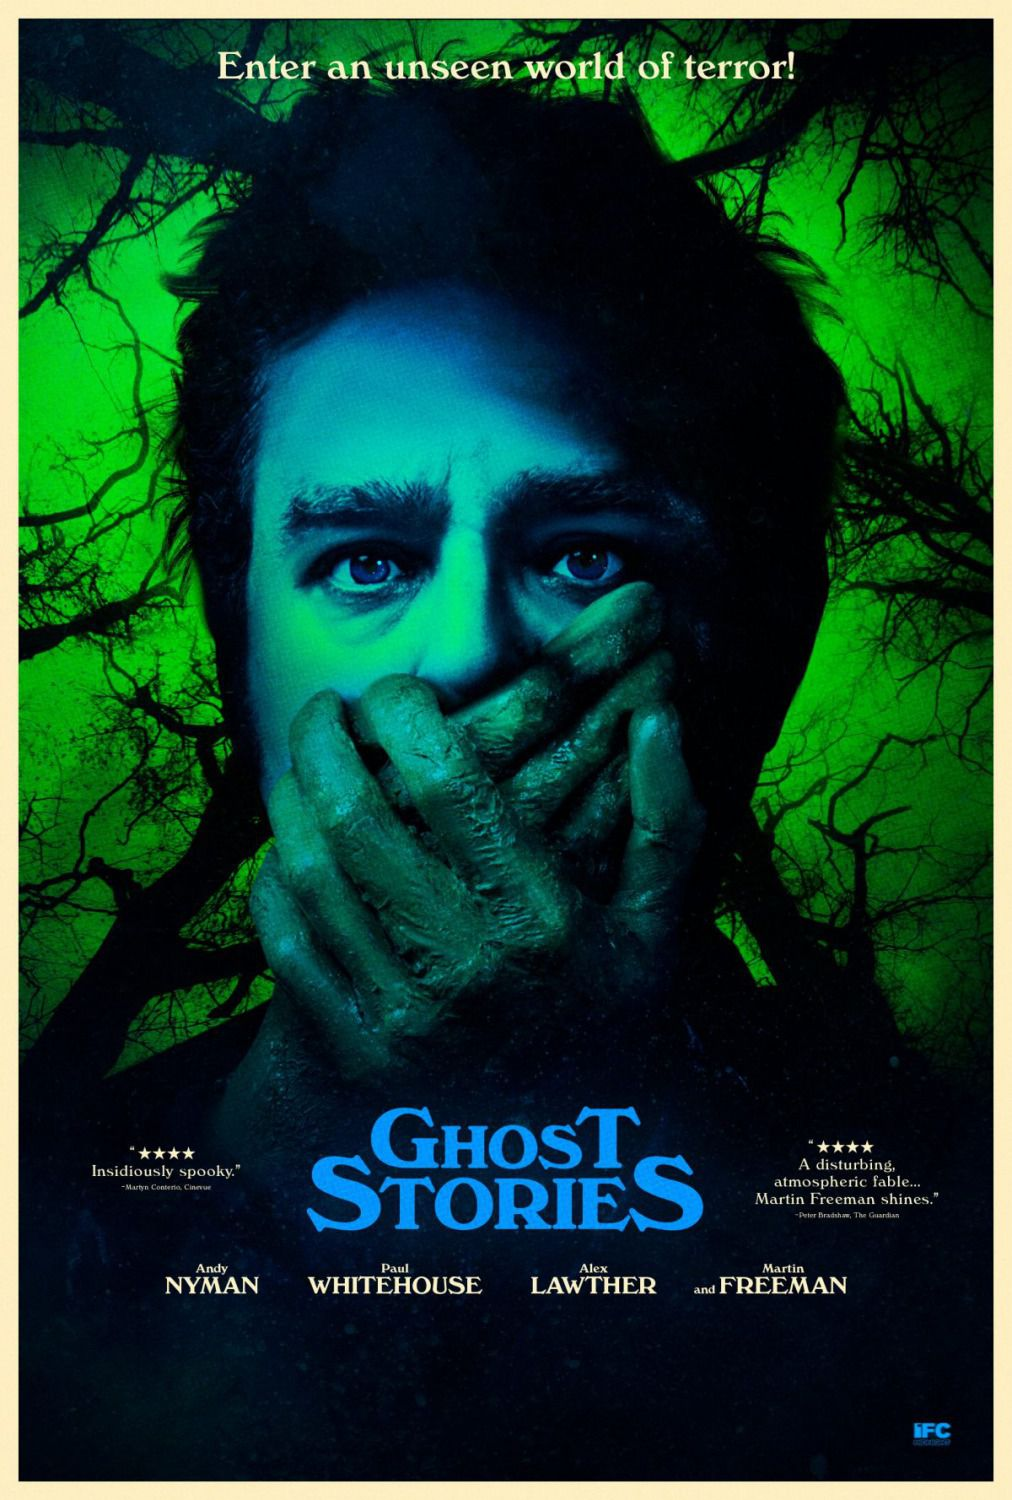 Ghost Stories - 2018 - Enter an unseen world of terror - horror film poster - Silence